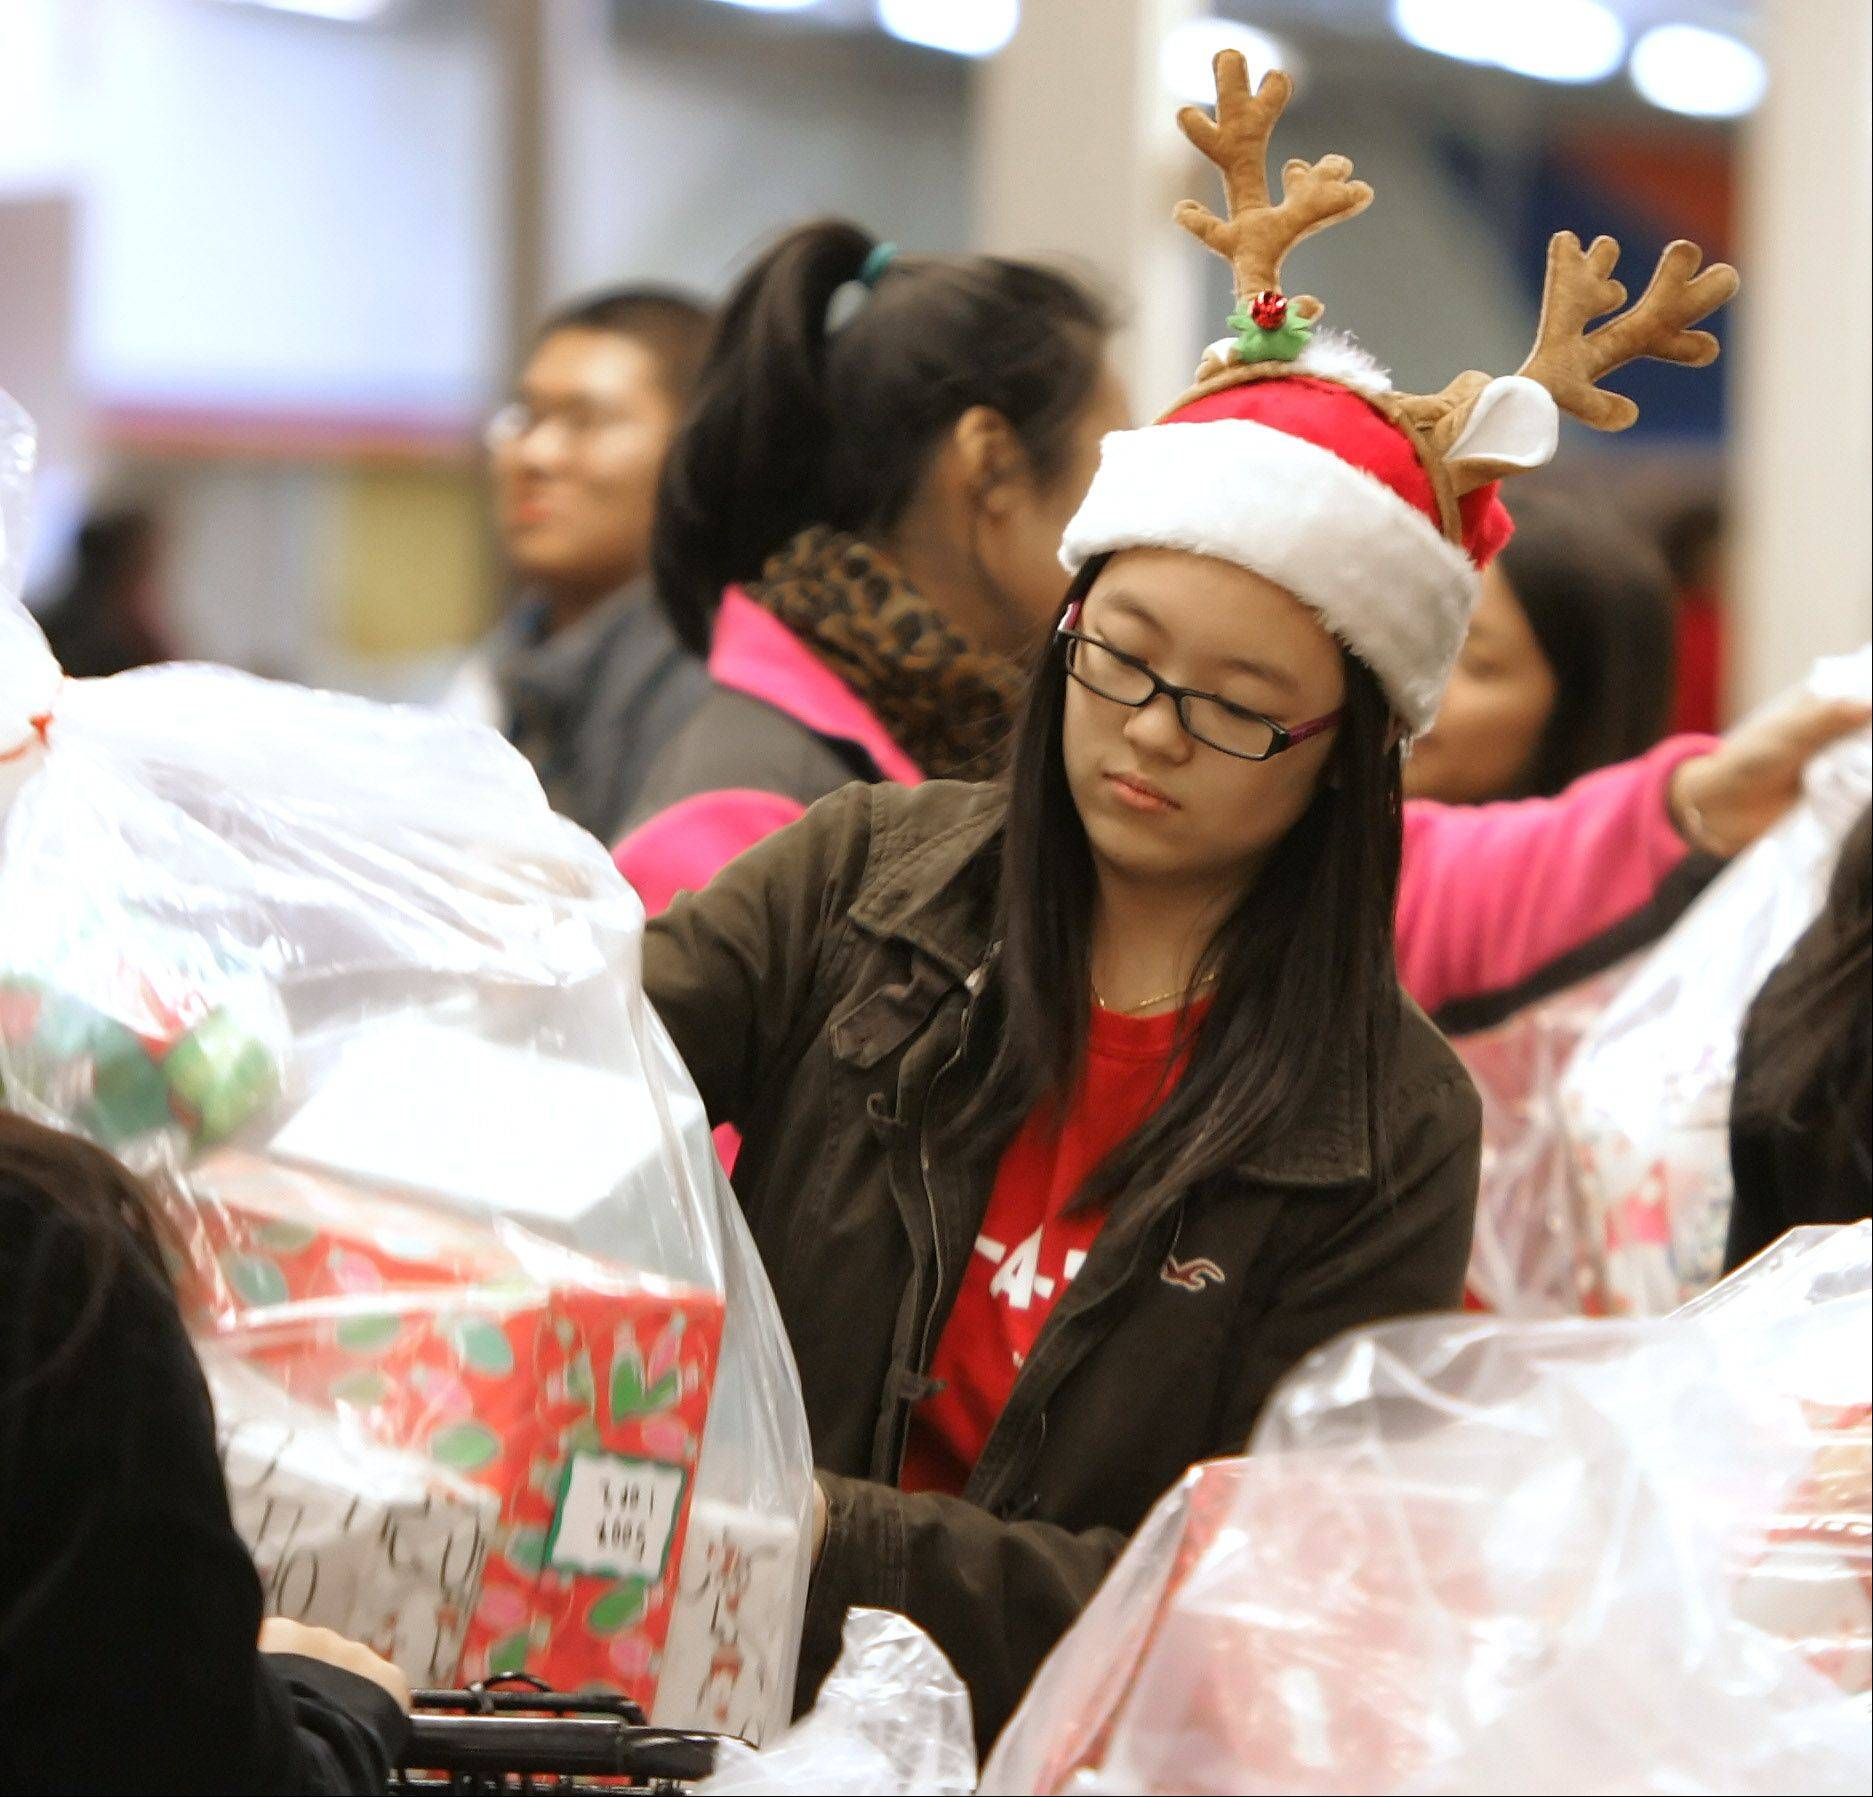 Stevenson High School senior Christine Zhal gets in the holiday spirit by wearing antlers while unloading presents Wednesday.